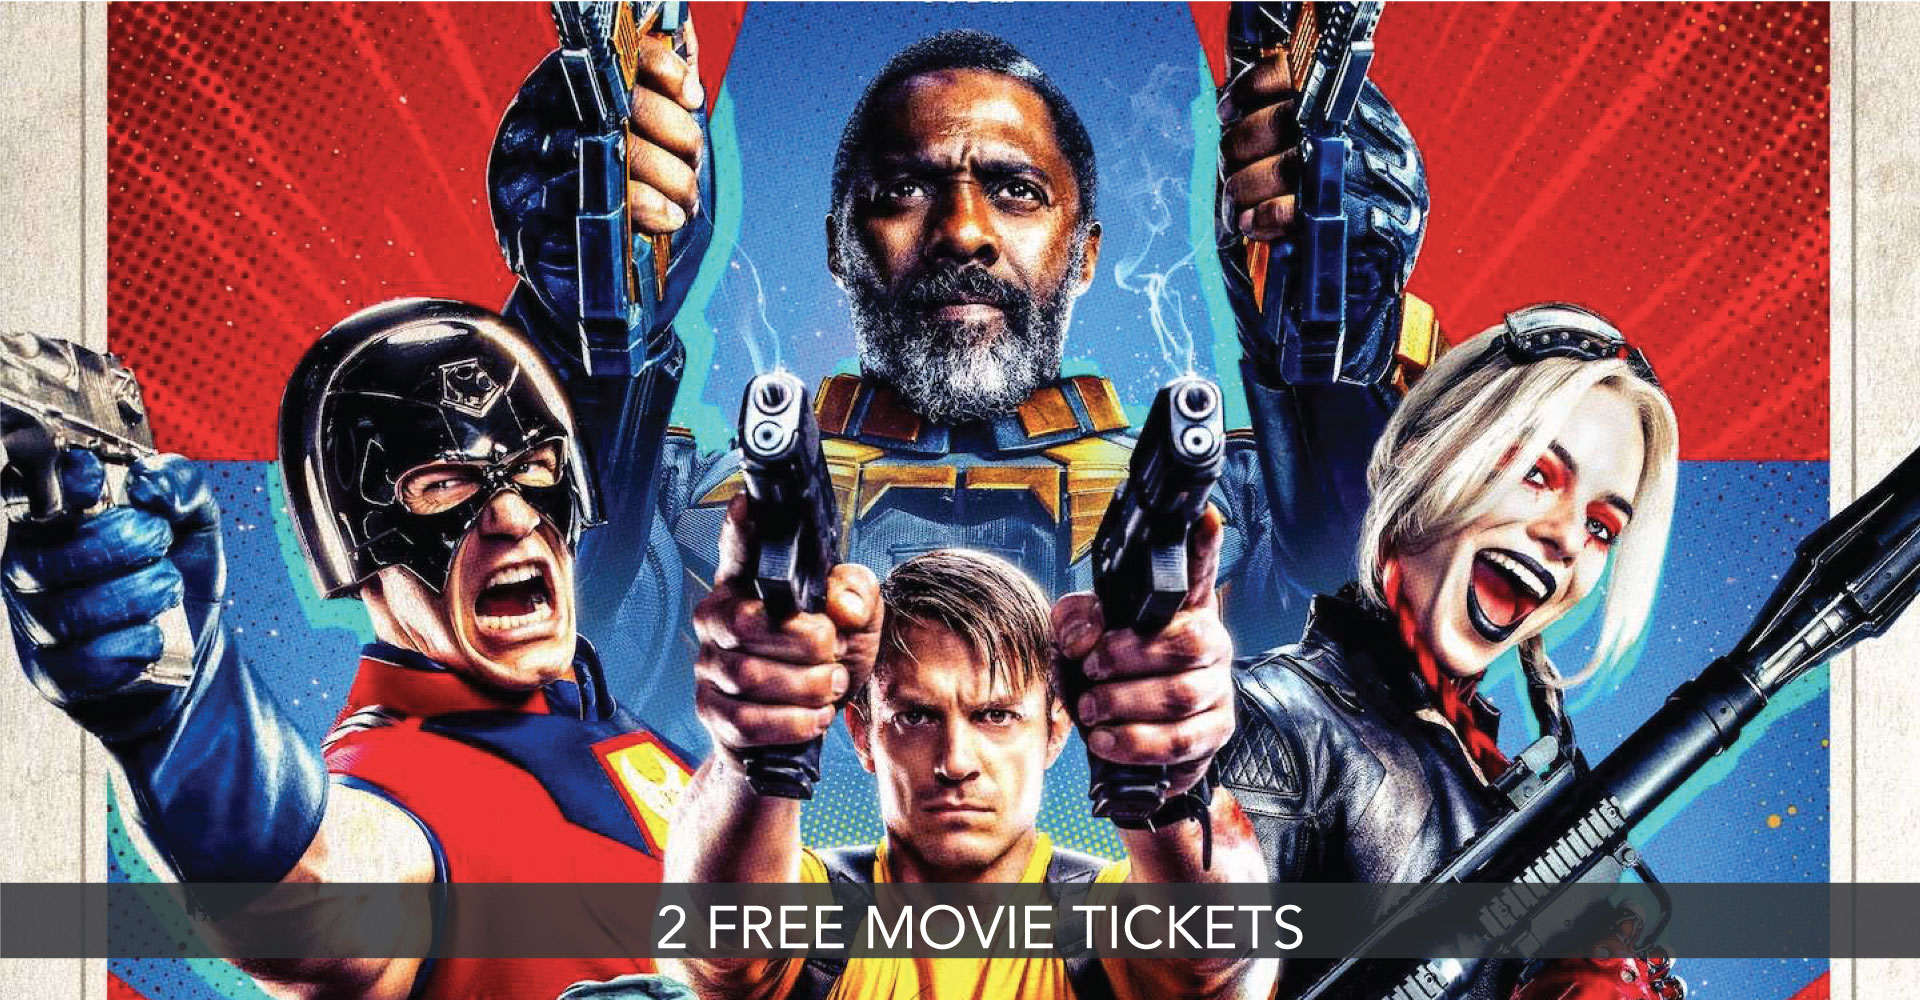 2 FREE MOVIE TICKETS WHEN YOU BOOK YOUR NEXT LOGBOOK SERVICE